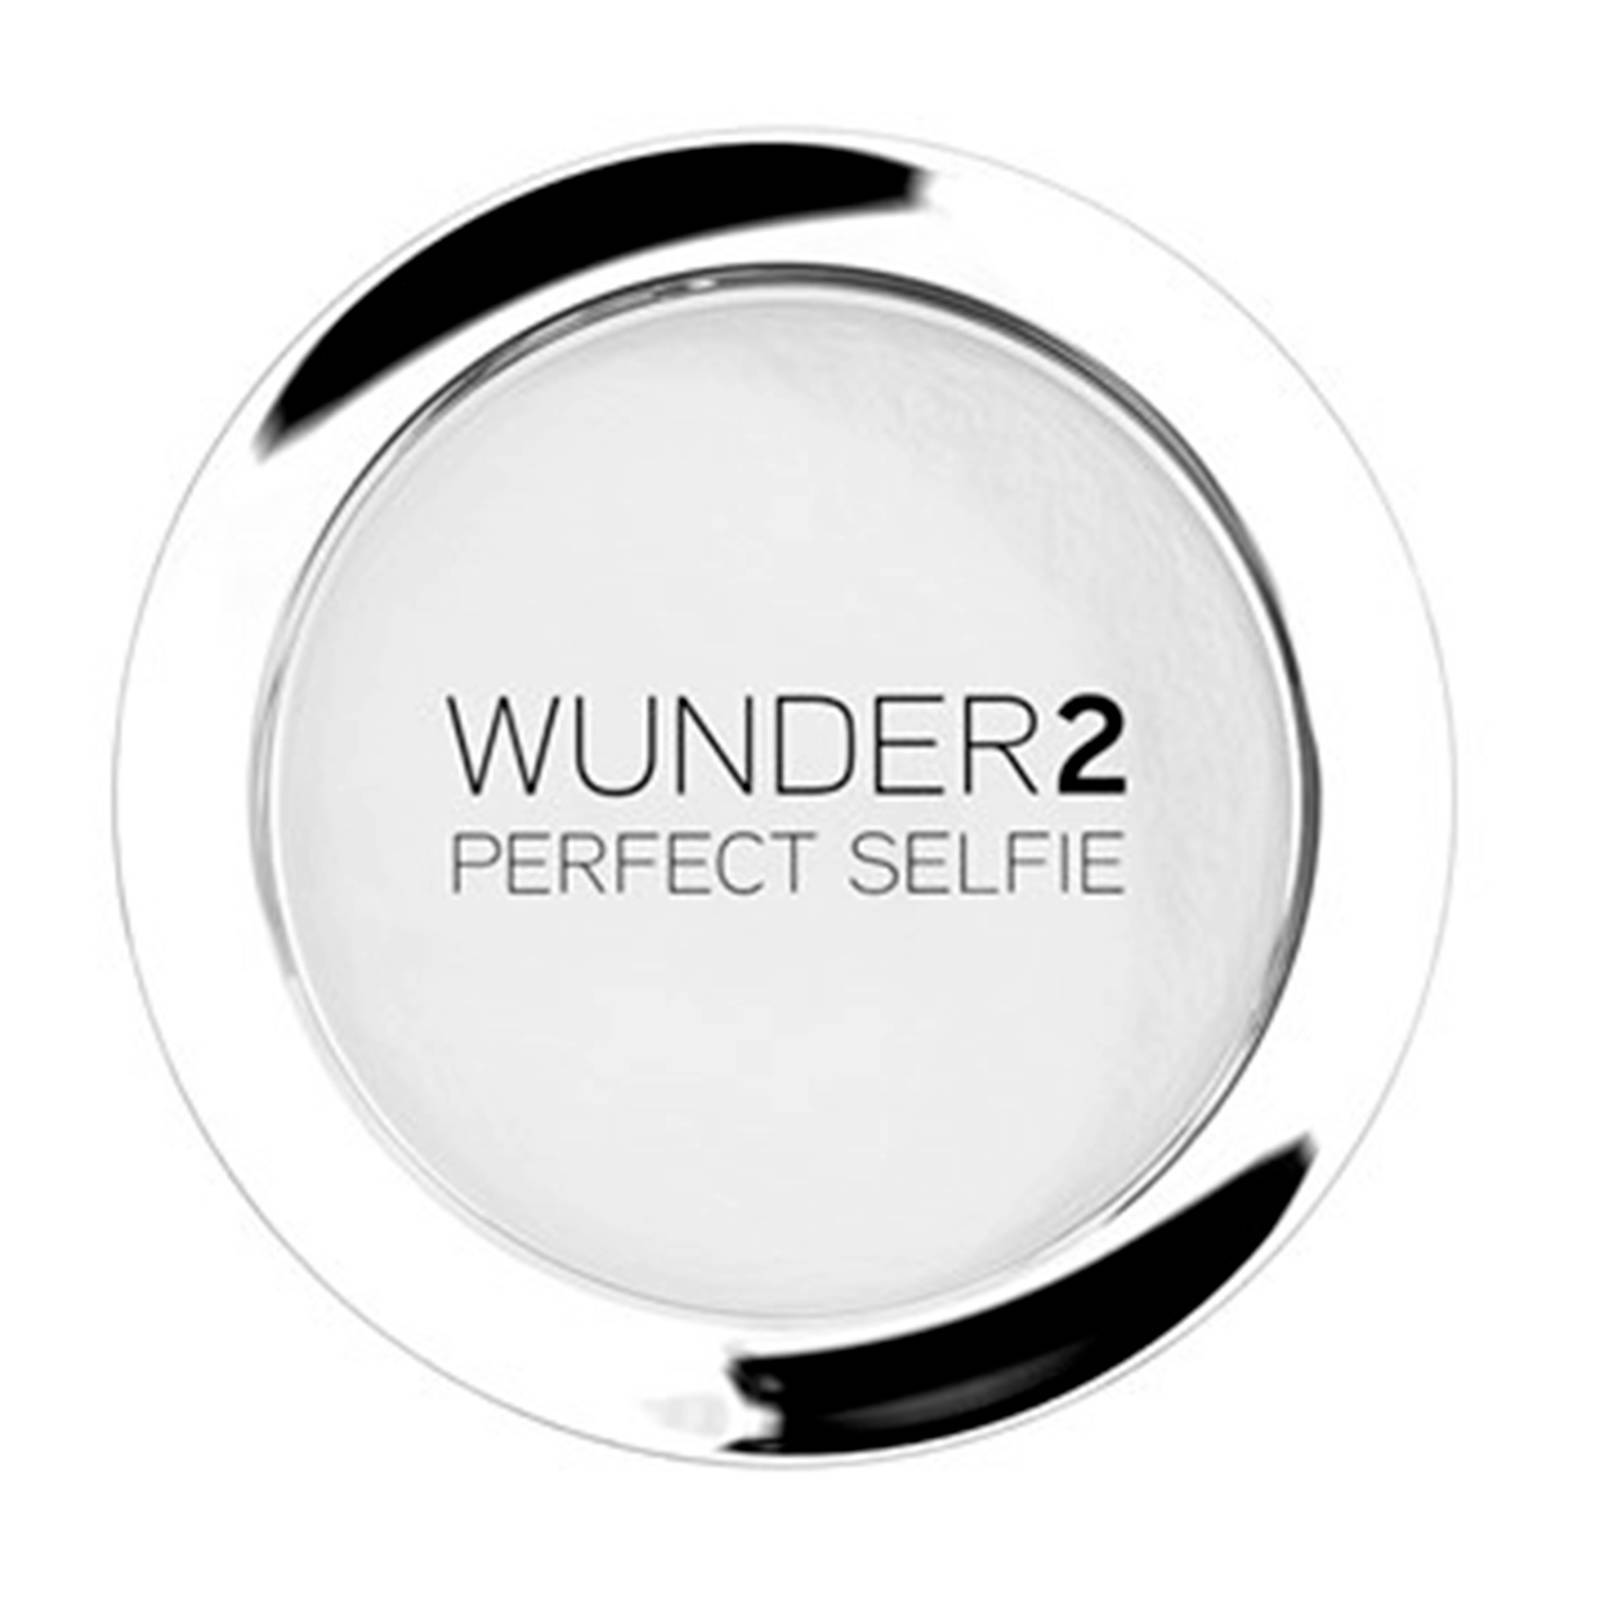 Wunder2 Perfect Selfie Hd Photo Finishing Powder Wehkamp